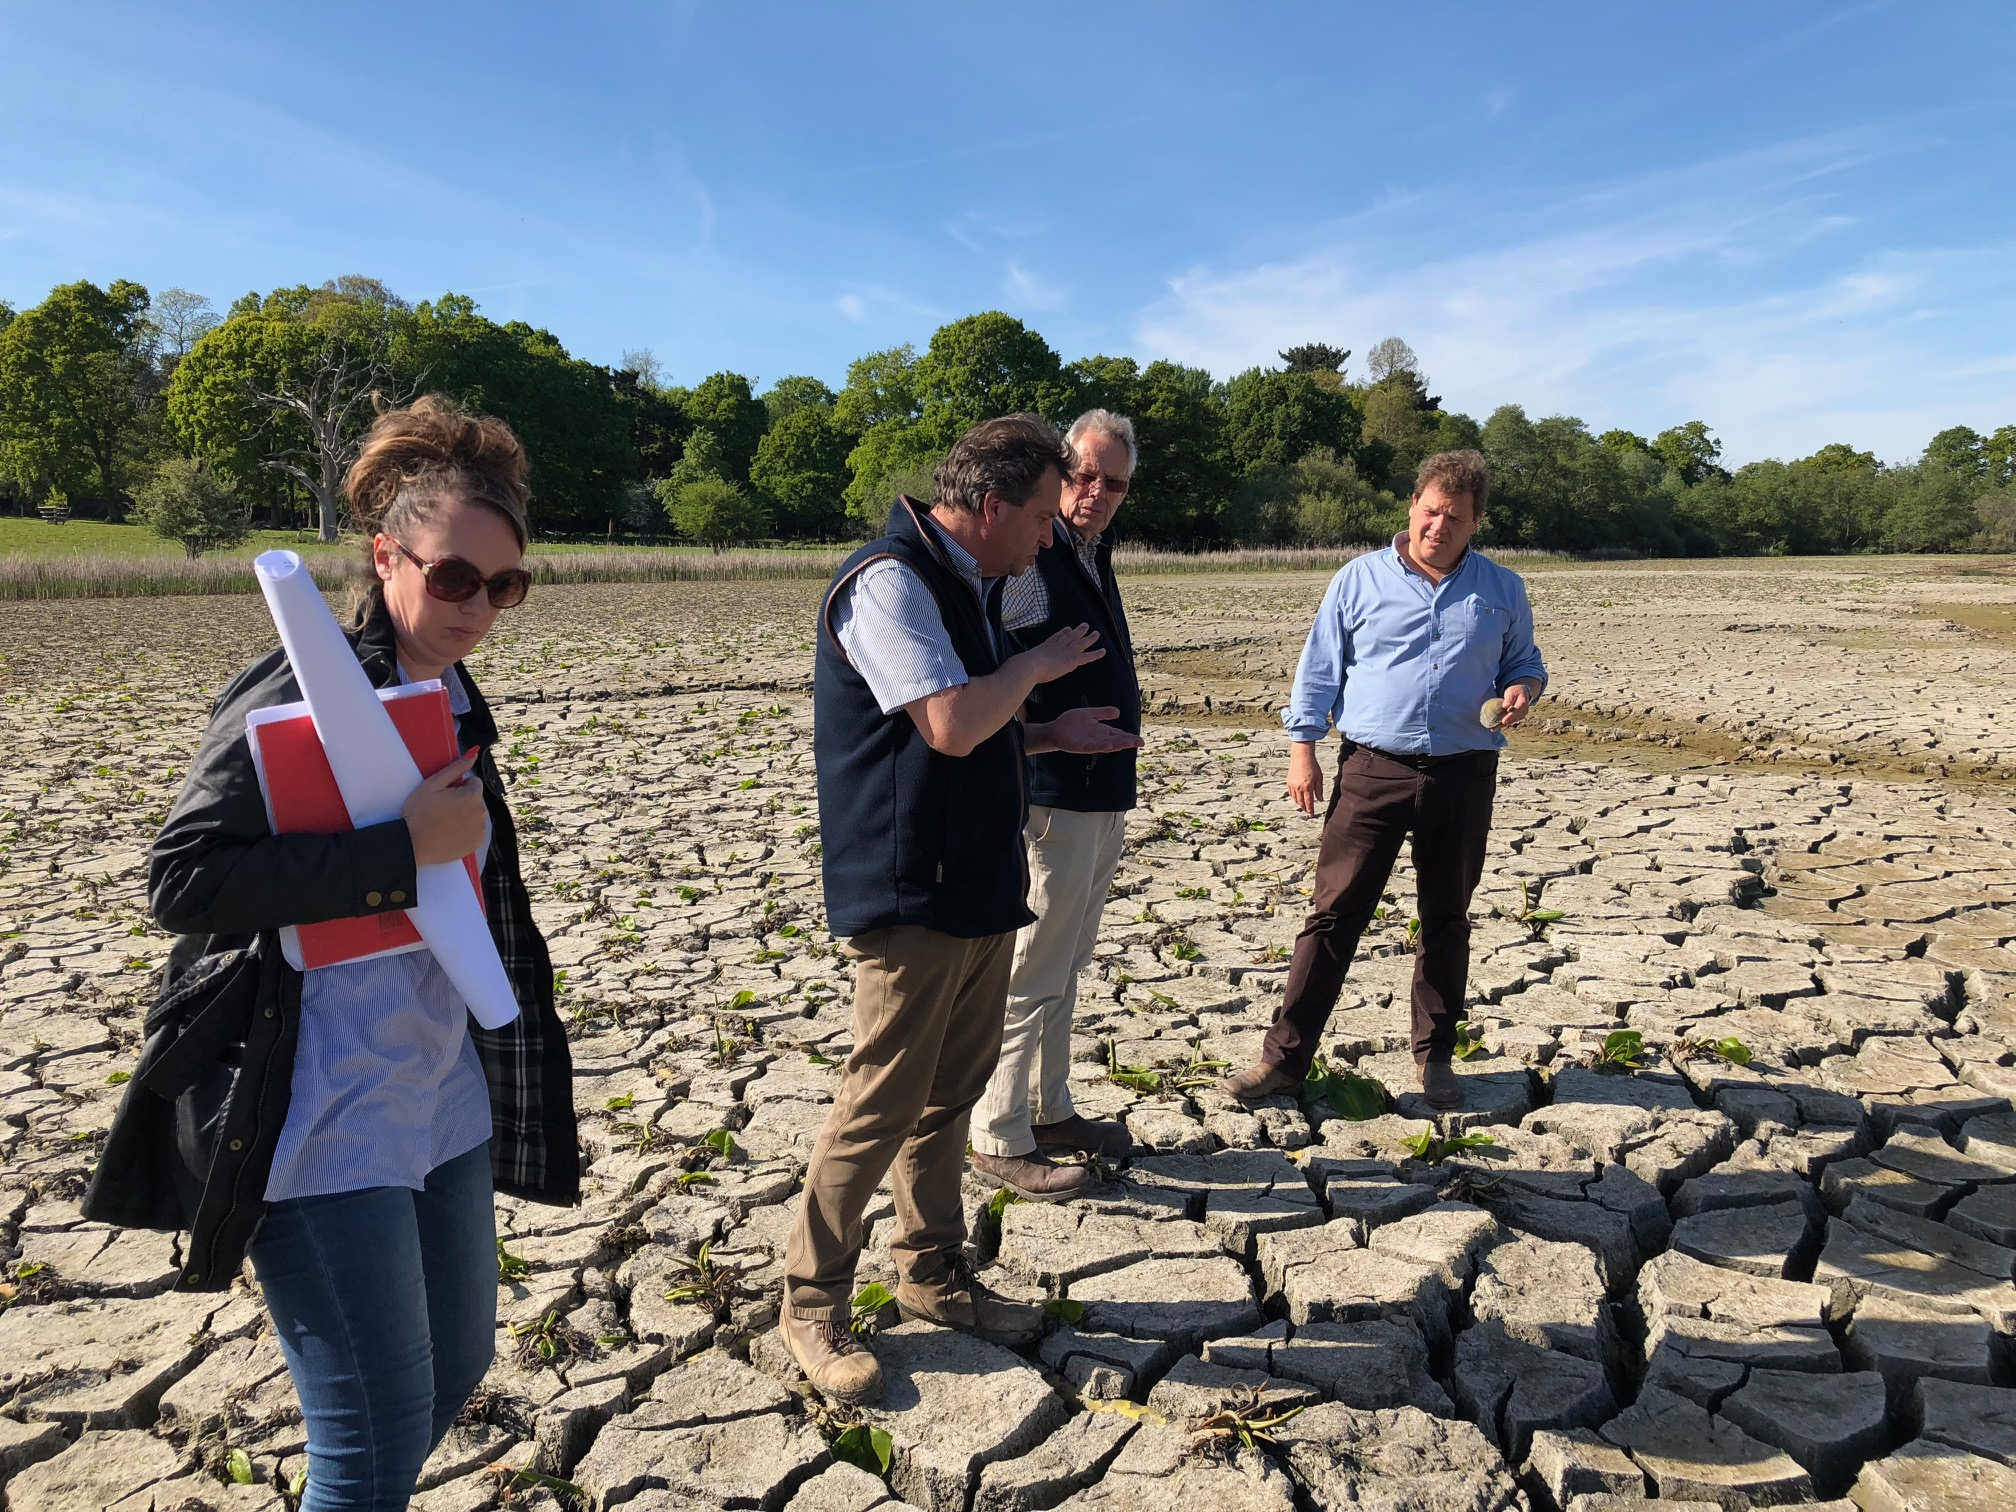 Contemplating the drying silt – one advantage of a dry Spring